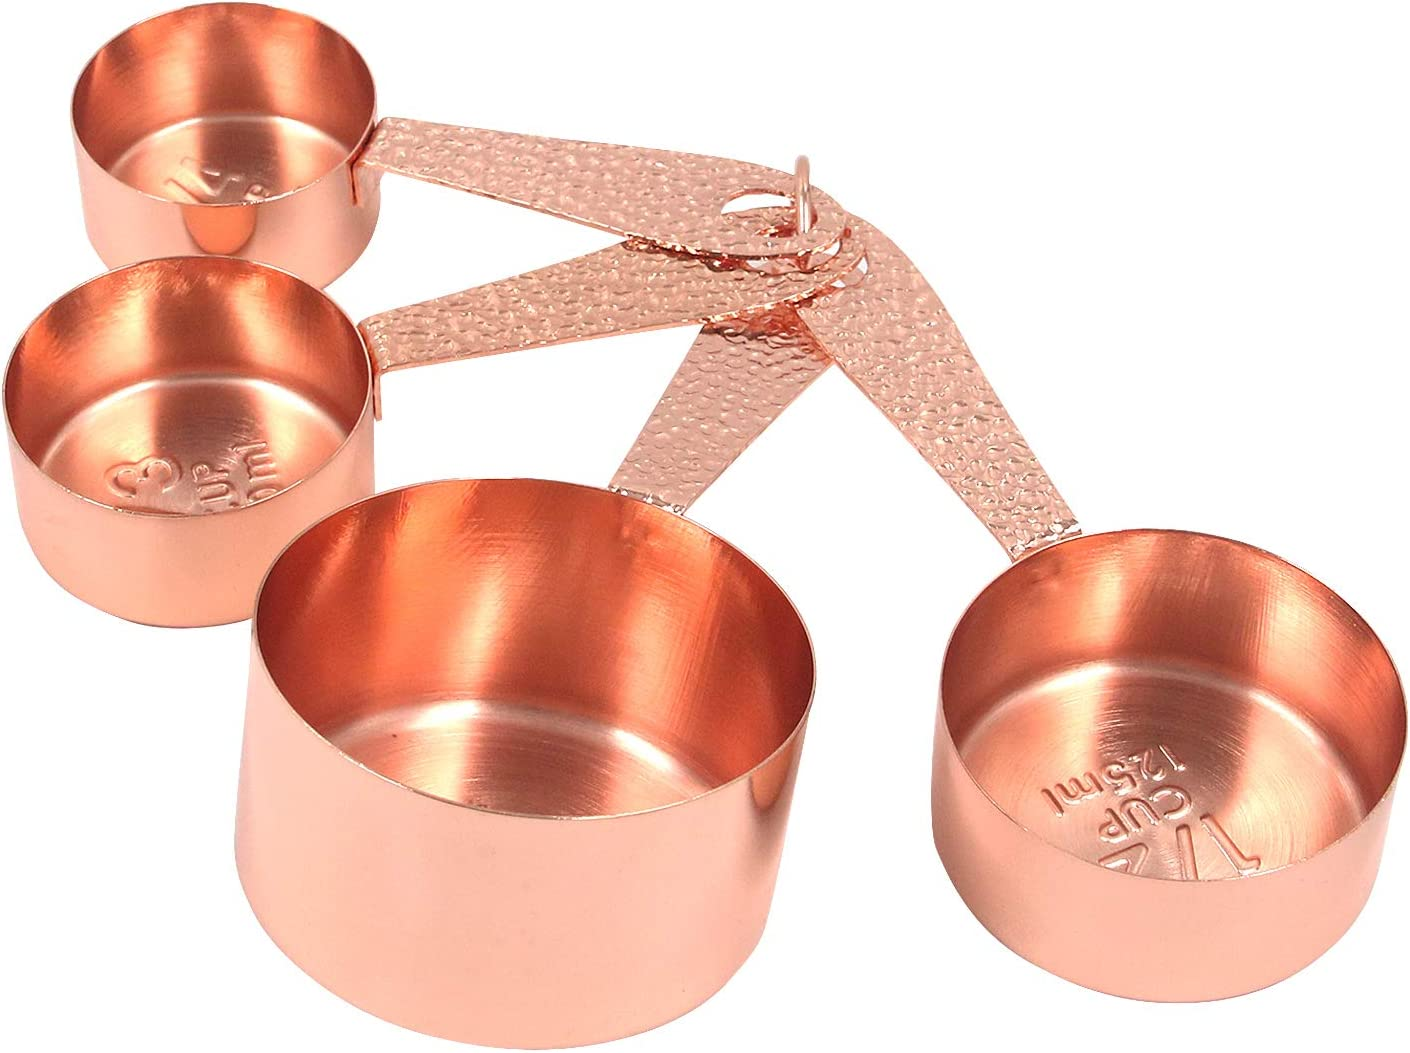 Semetall Measuring Cups 4 Pcs Stainless Steel Measuring Cups Set with Engraved Marking Ruler,Cups for Cooking, Mixing and Food Processing (Rose Gold)